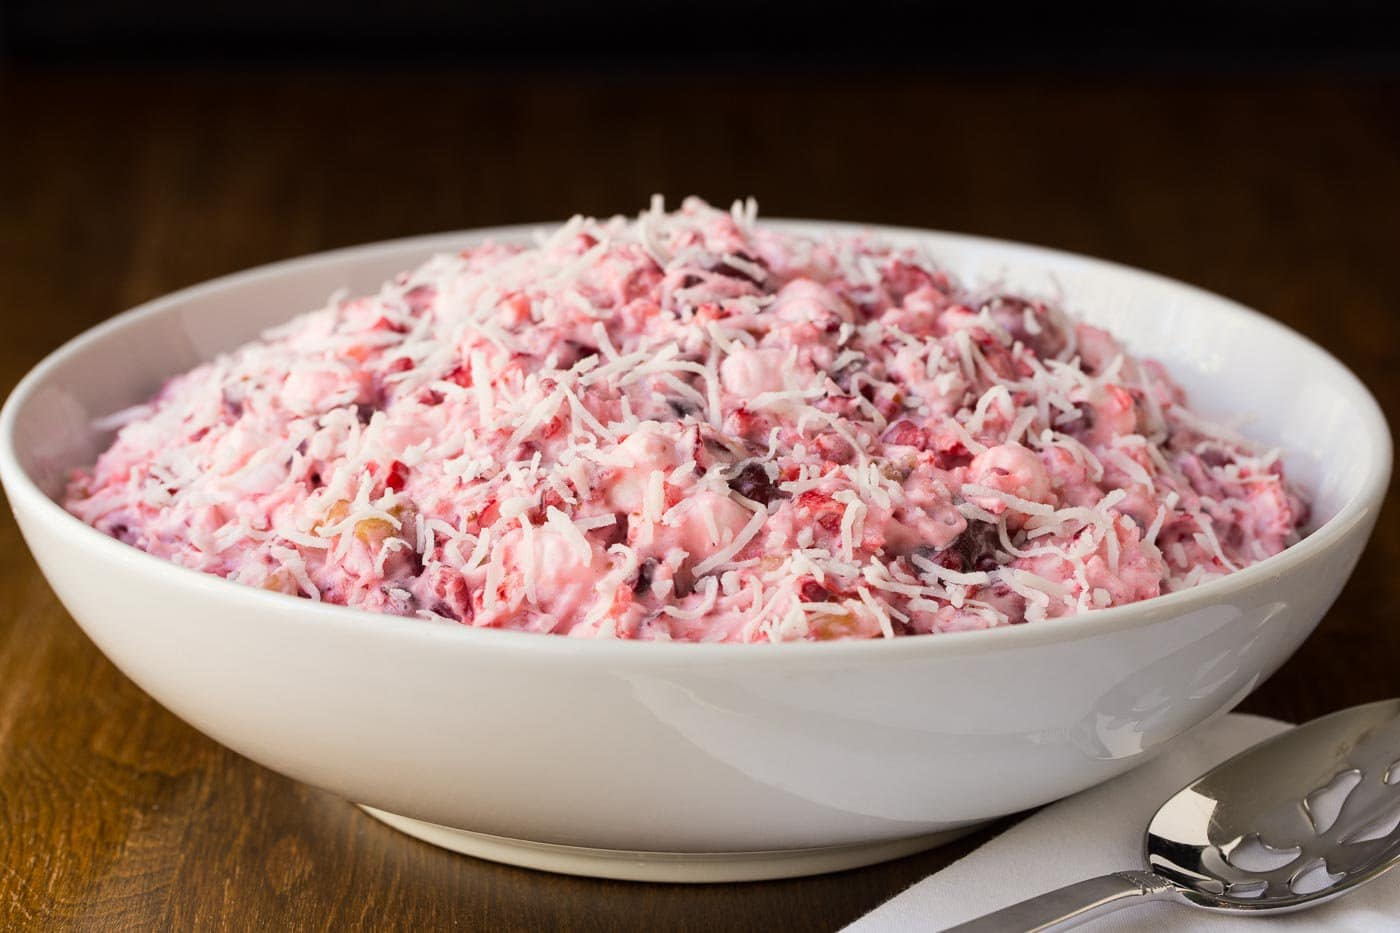 Photo of a white serving bowl of Nanny's Wonderful Cranberry Salad on a wood table.